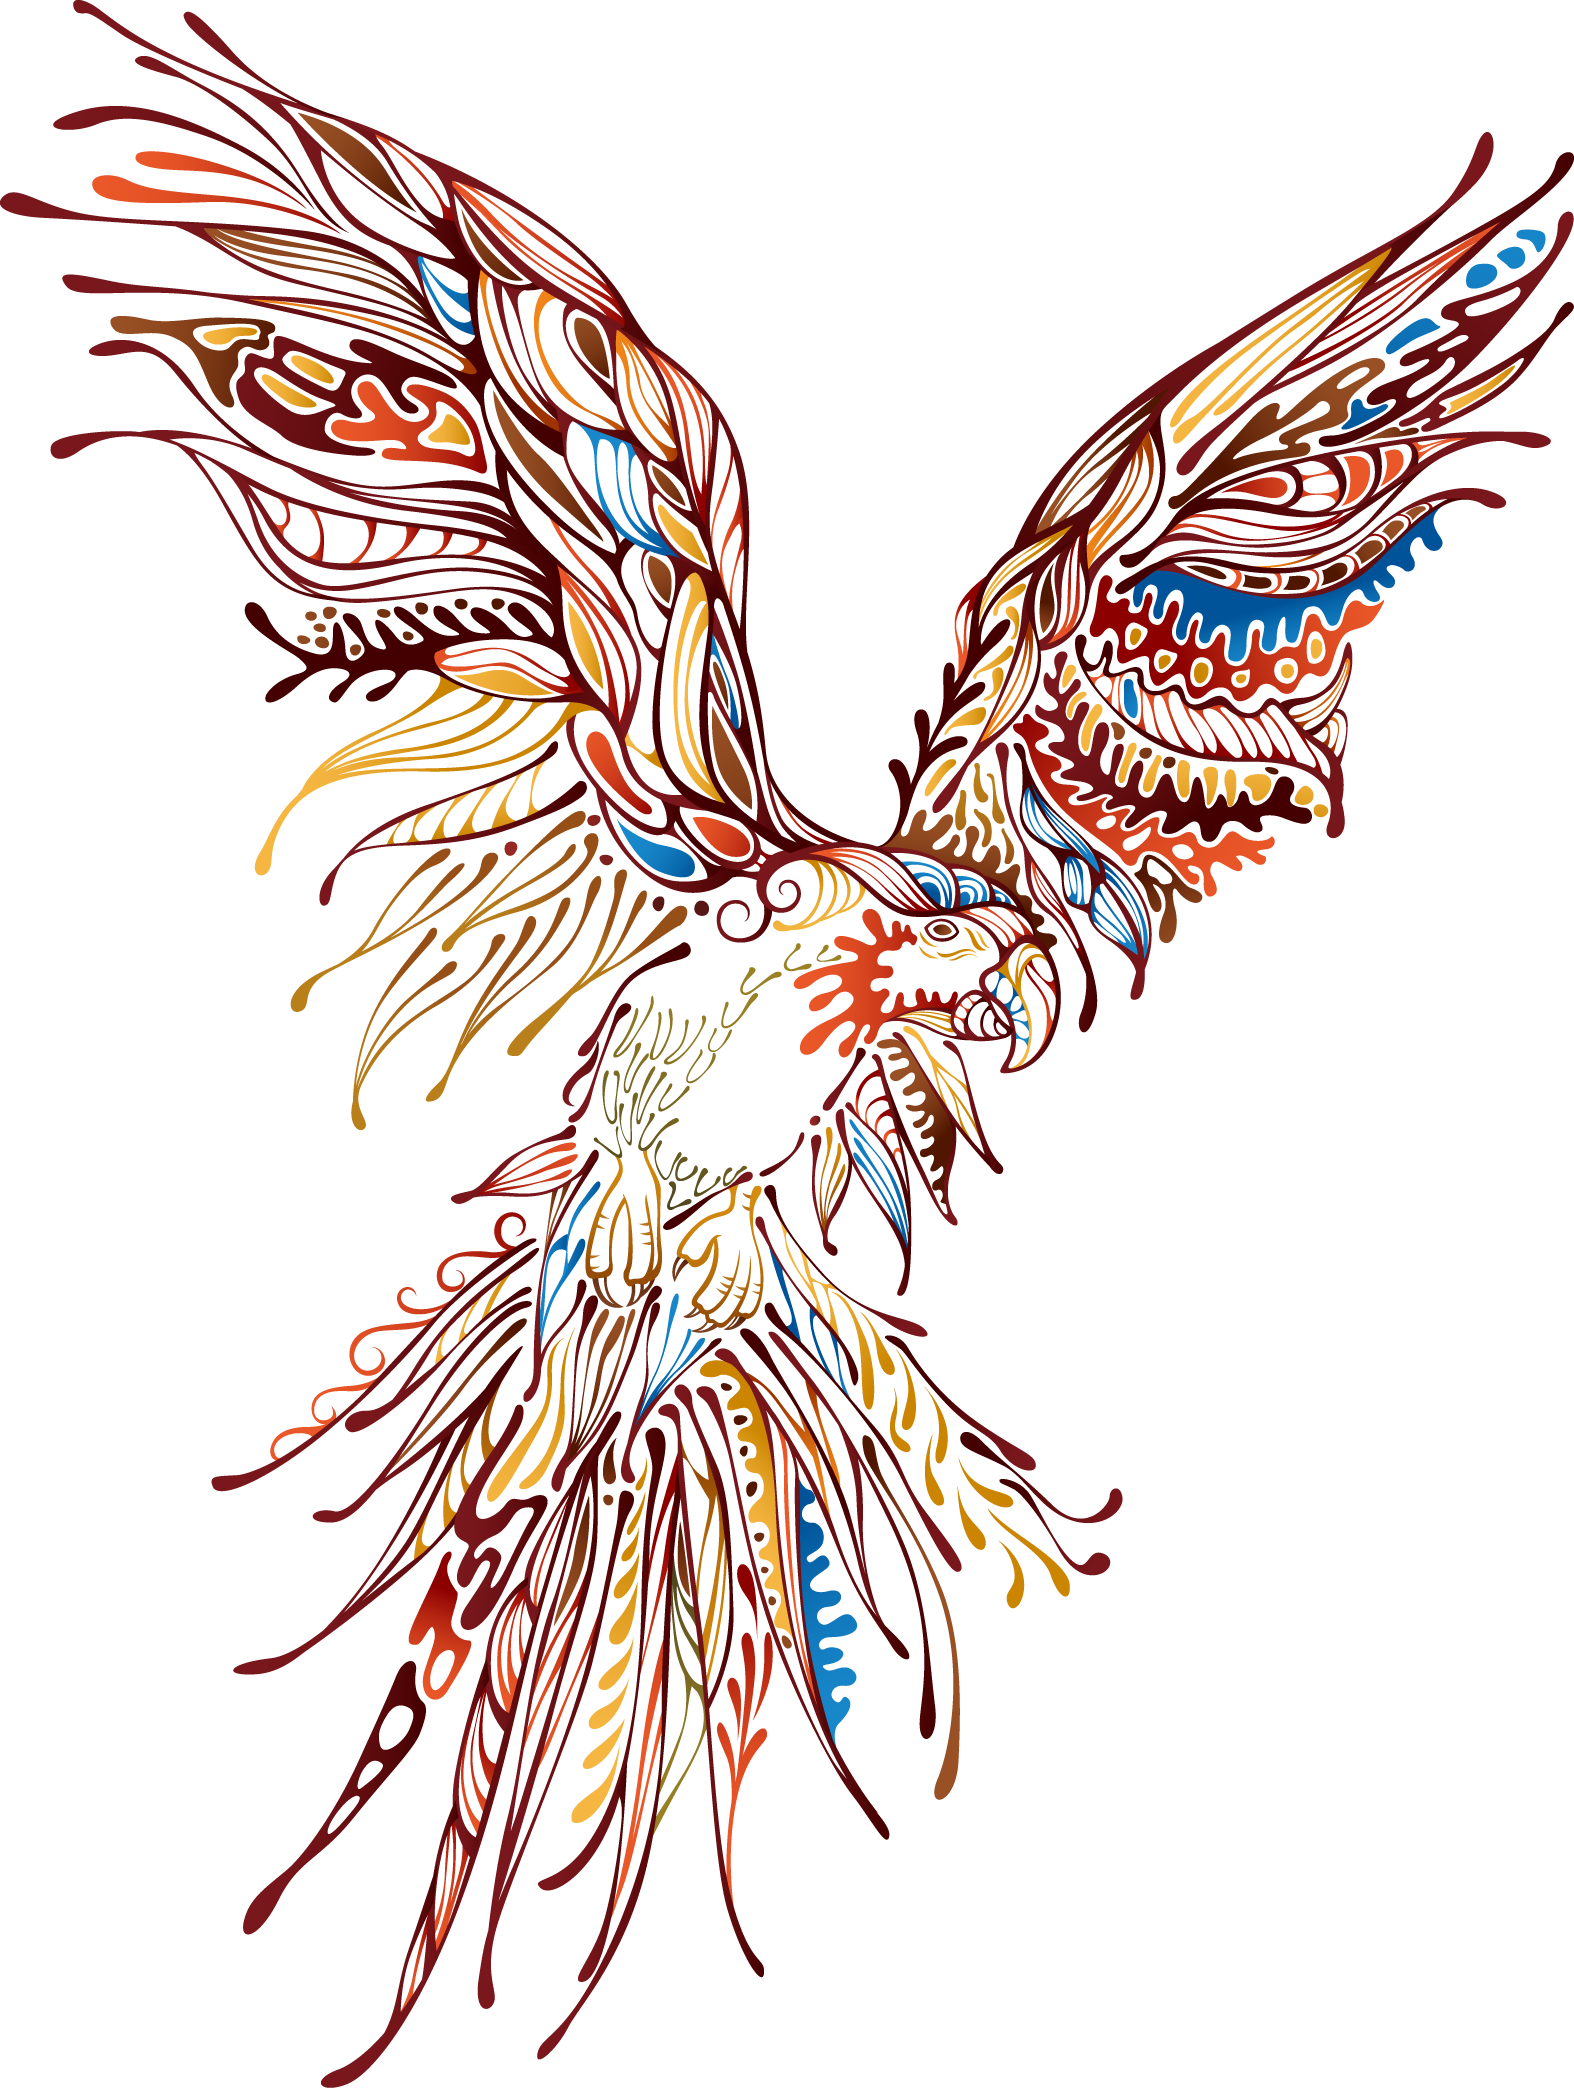 Abstract animal png. Art eagle printing transprent